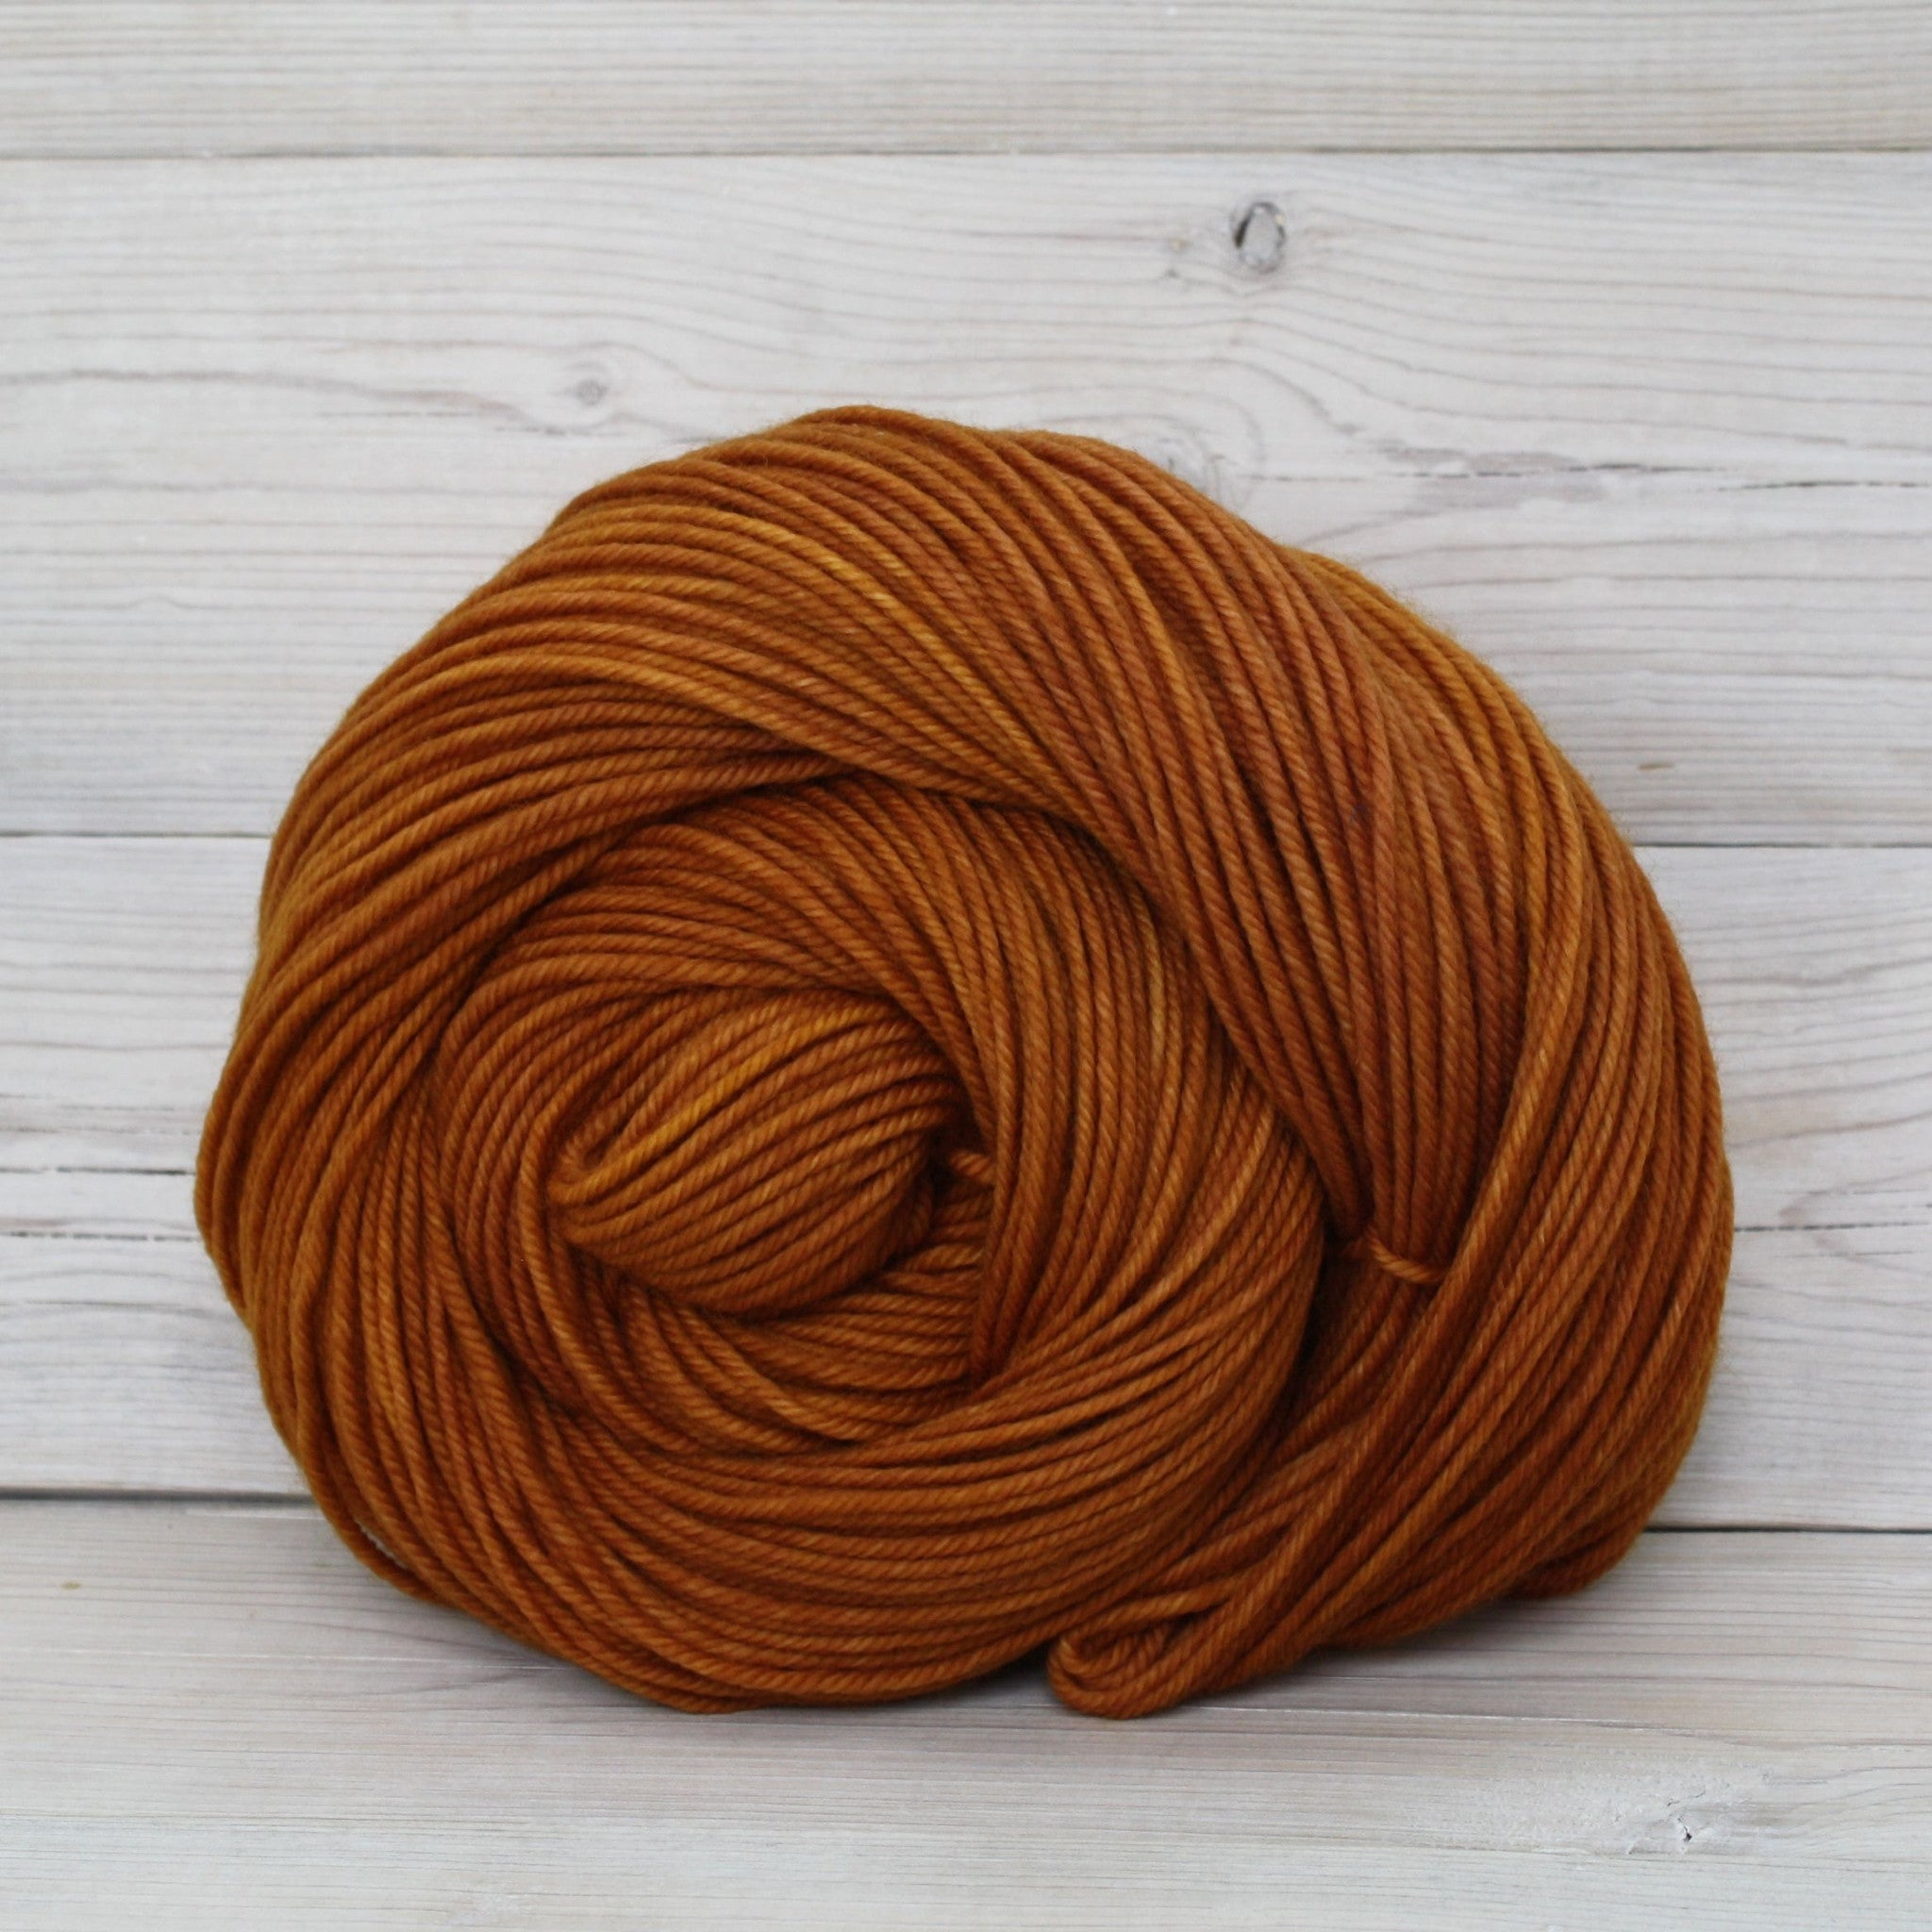 Luna Grey Fiber Arts Calypso Yarn | Colorway: Spiced Cider